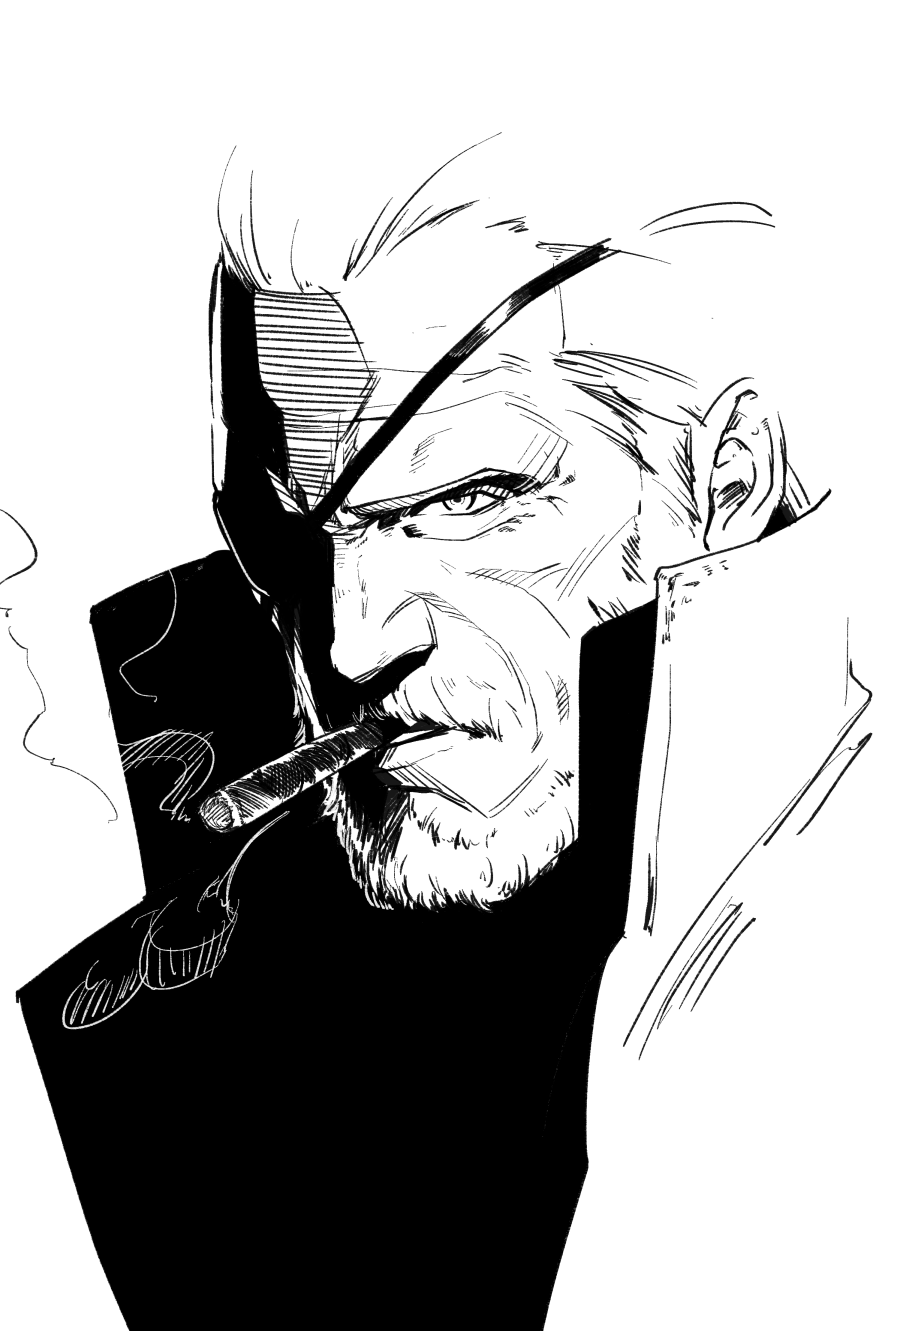 1boy beard cigarette collared_coat eyepatch face facial_hair greyscale hair_slicked_back highres hikichi_sakuya male_focus mature_male metal_gear_(series) metal_gear_solid monochrome mustache old old_man older portrait short_hair sketch smoking solid_snake solo upper_body wrinkled_skin